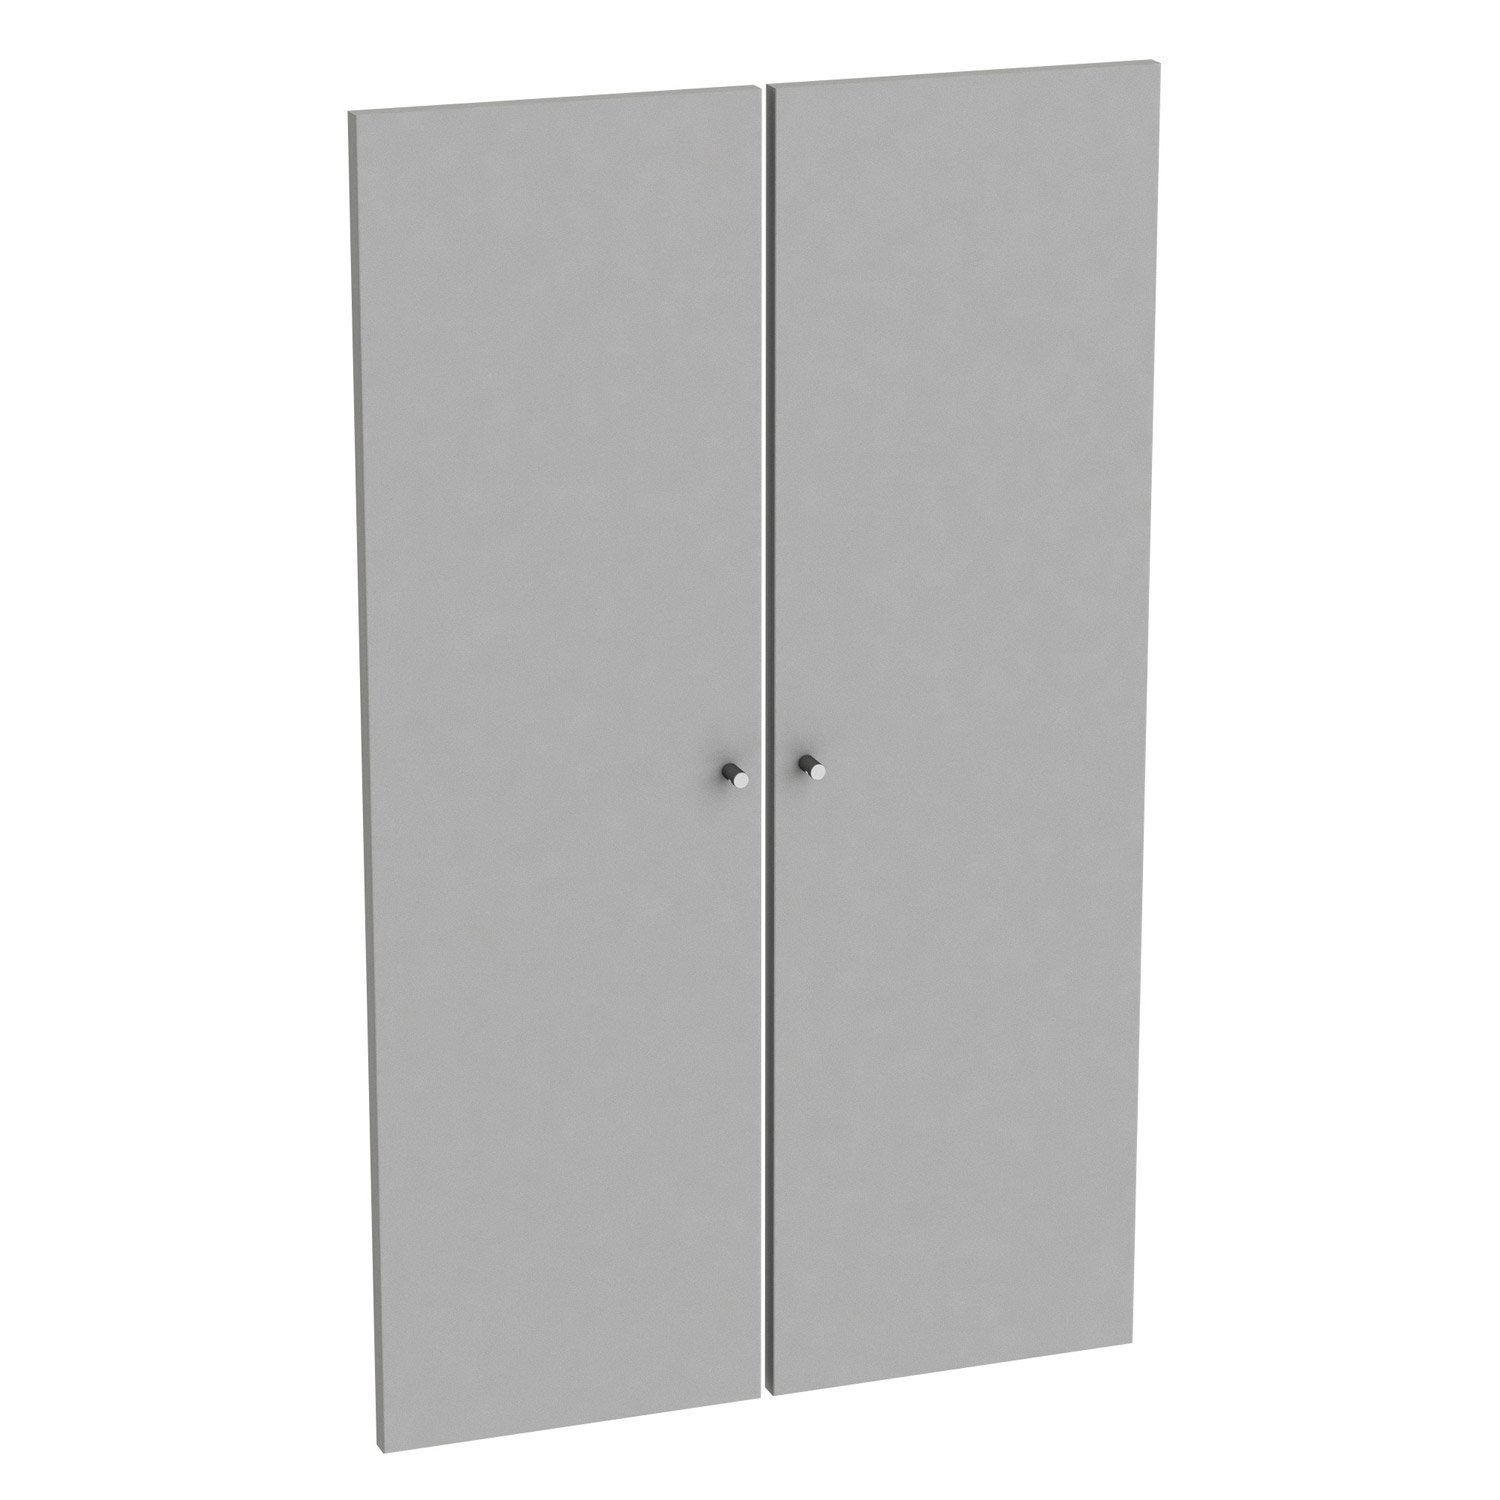 Incroyable Lot De 2 Portes Battantes SPACEO Home 100 X 30 X 1.6 Cm, Anthracite